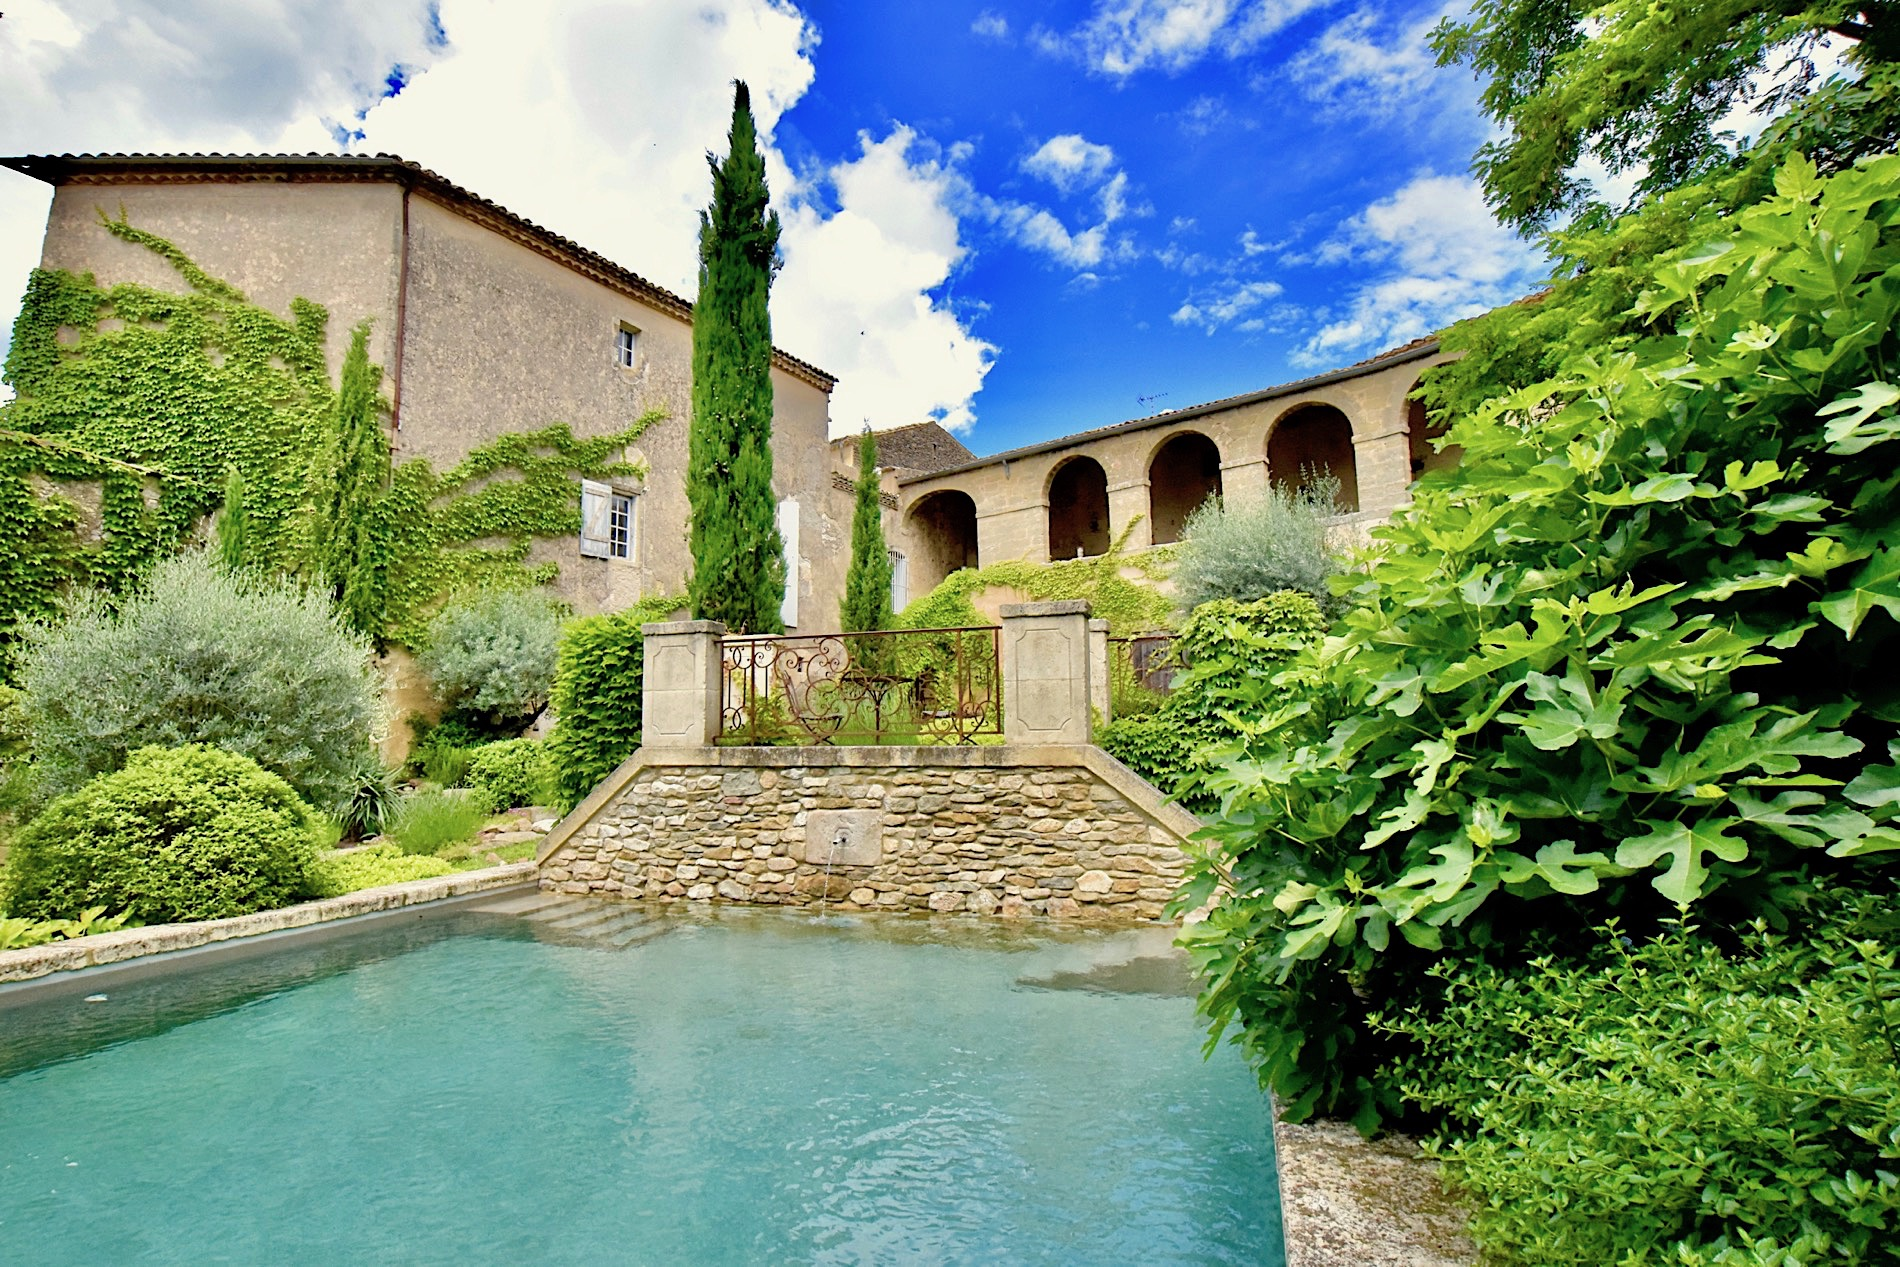 2205 : Uzès close by, gracious and elegant 17th century Bastide, former ducal hunting lodge  with its gardens and bassin…